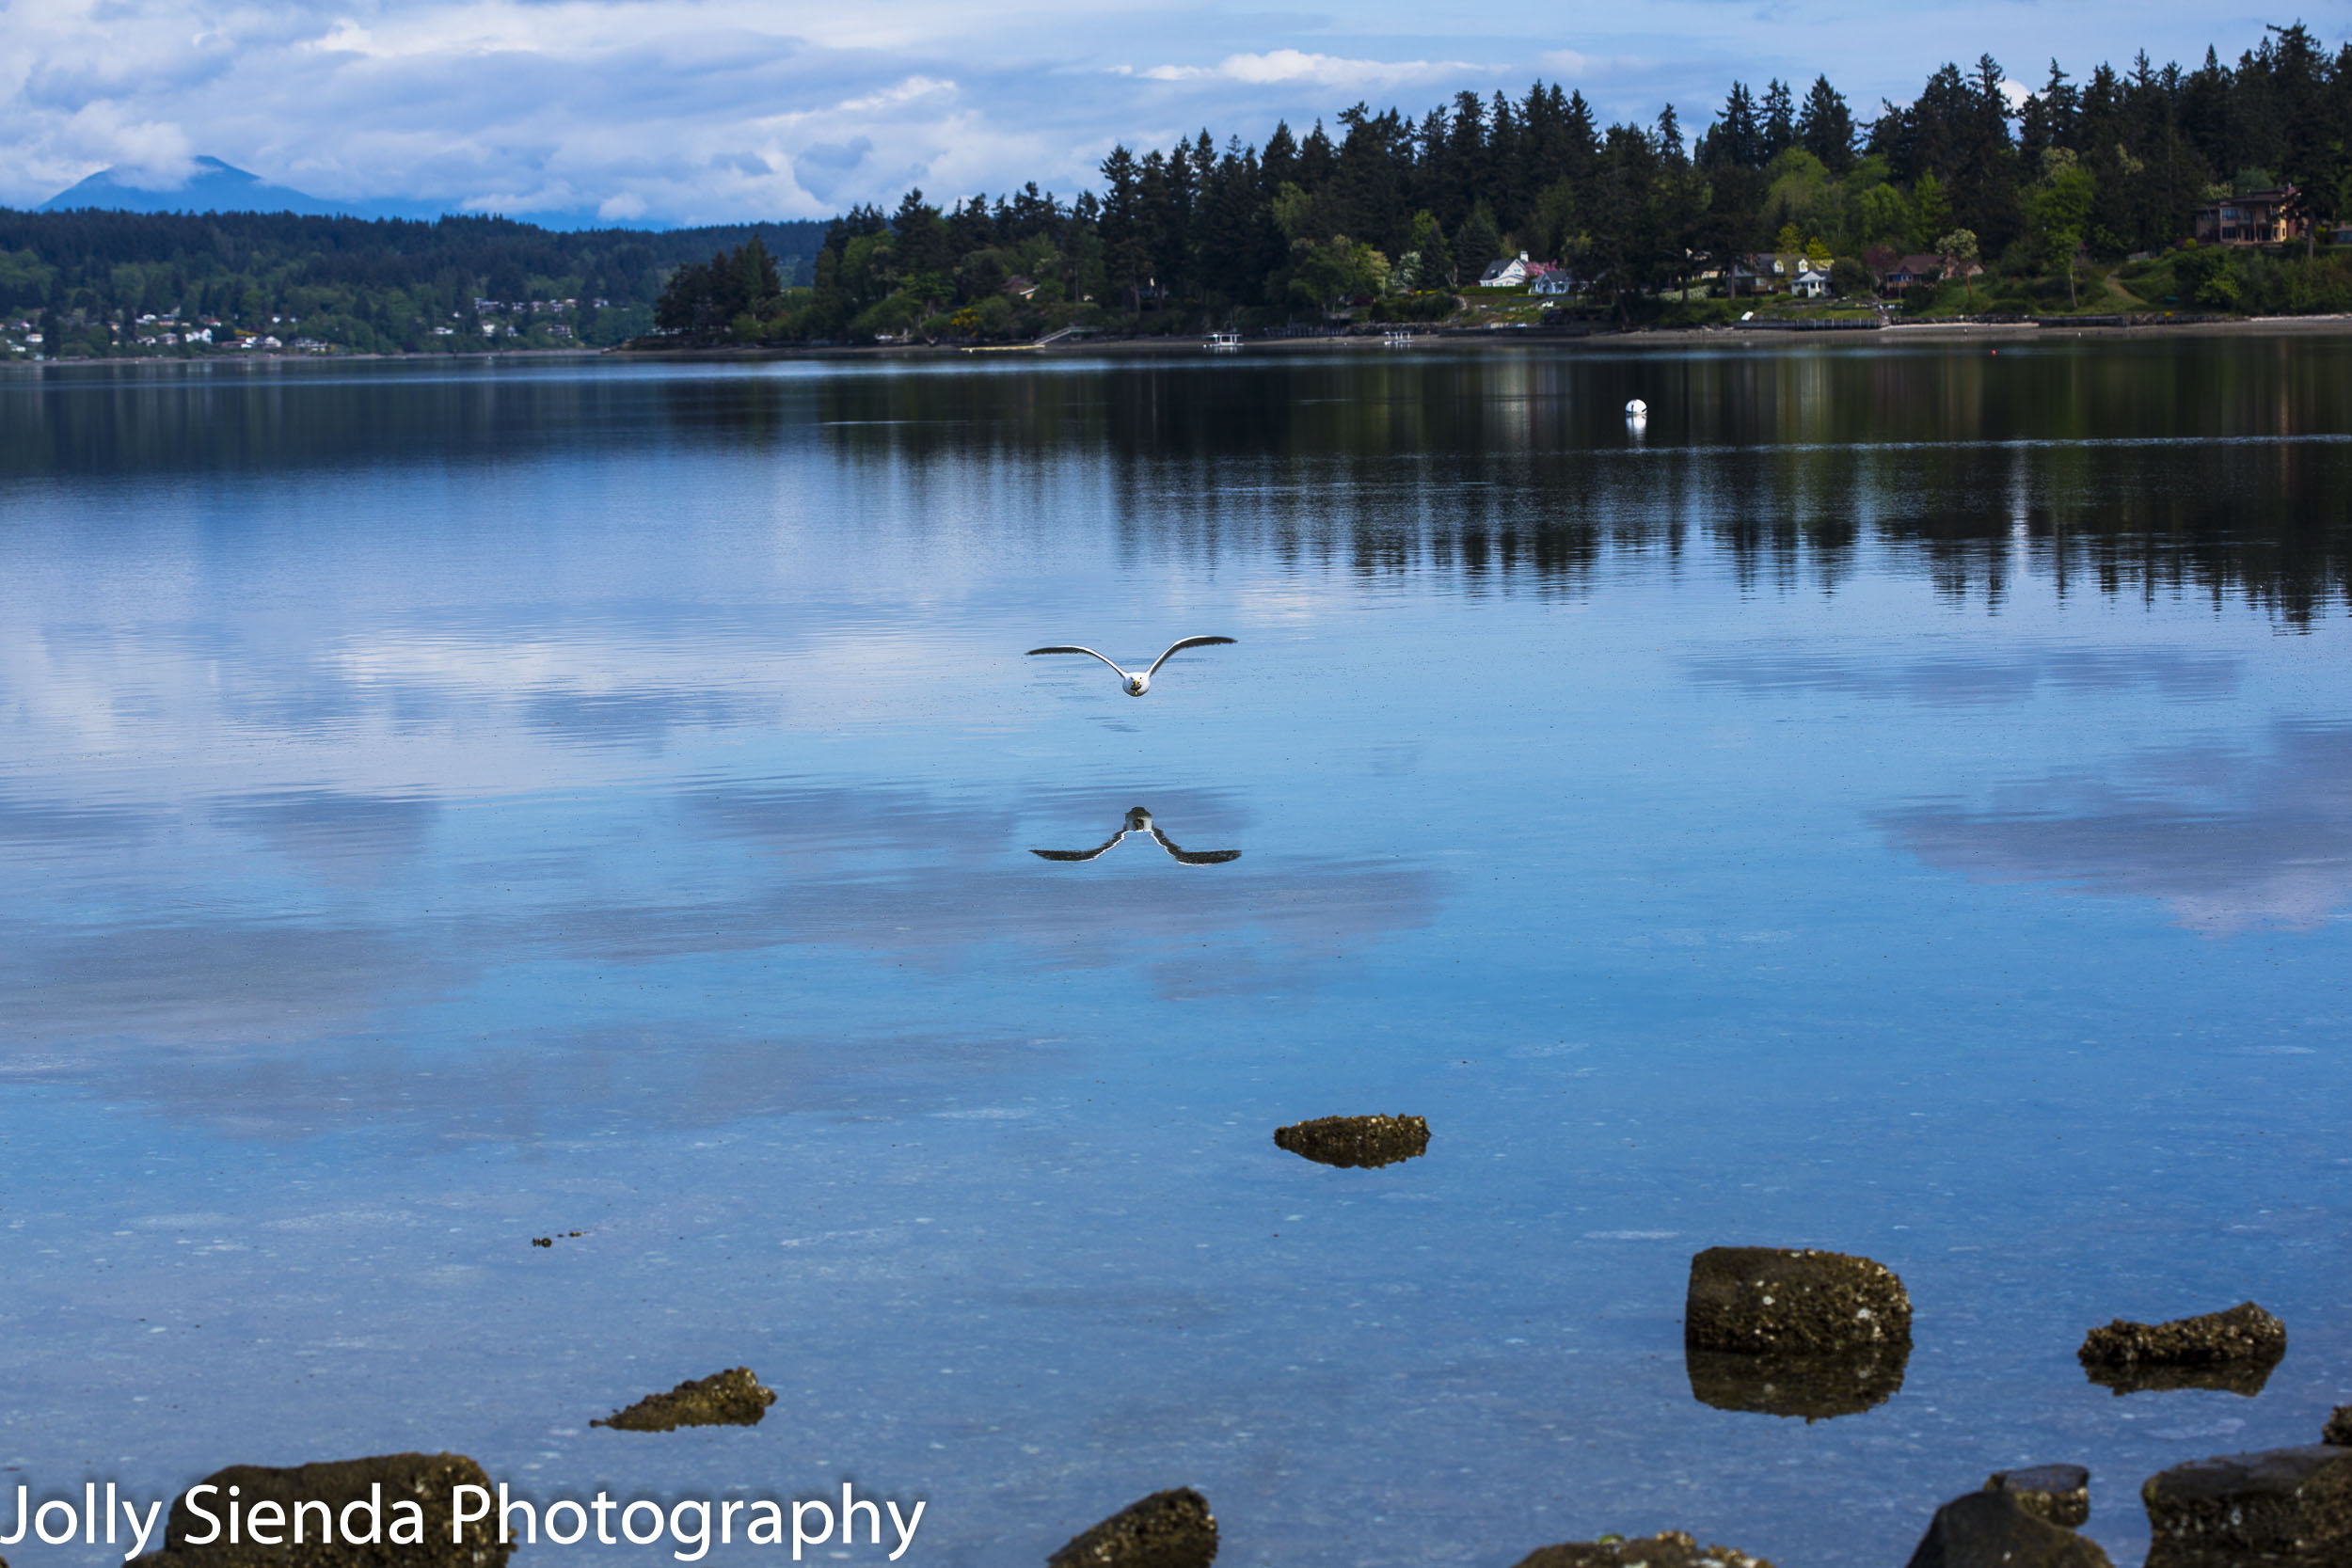 Seagull and its reflection flys low over Dyes Inlet